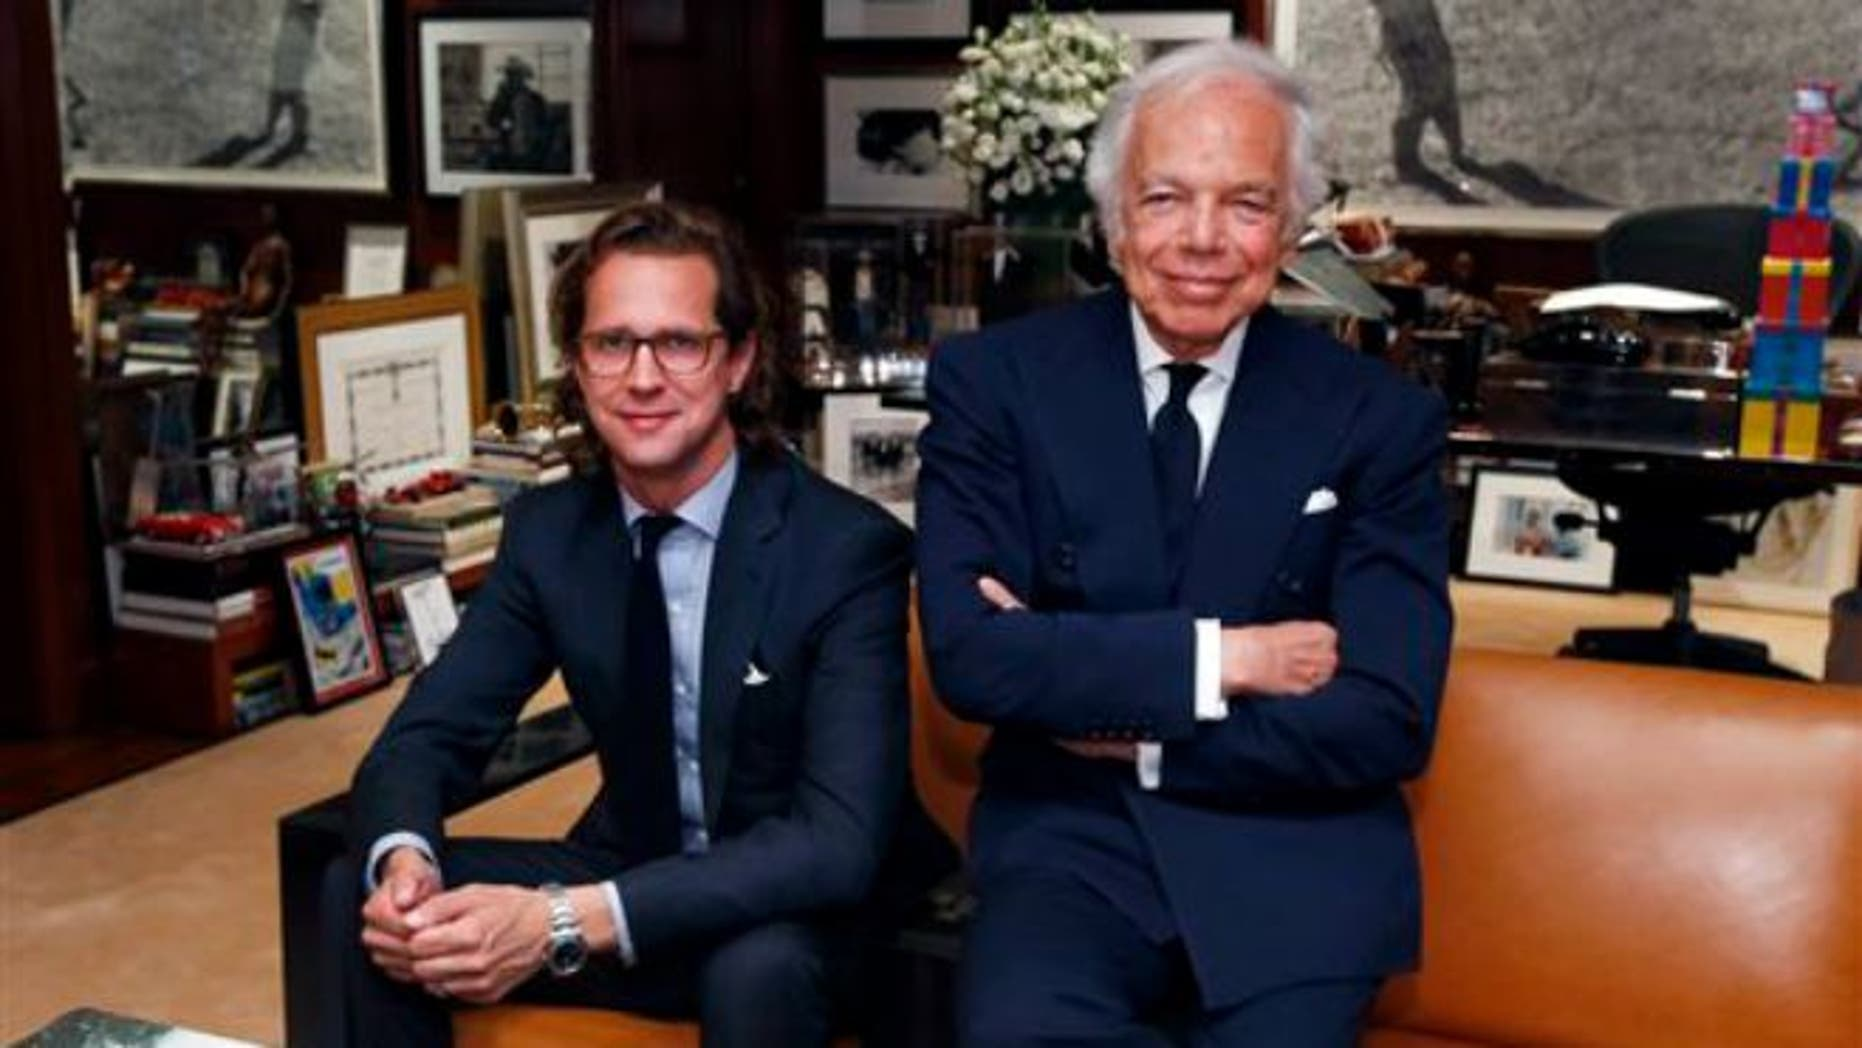 Sept. 29, 2015: Designer Ralph Lauren, right, poses in his office with Stefan Larsson, global brand president for Old Navy, in New York. Lauren is stepping down as CEO of the fashion and home decor empire that he founded nearly 50 years ago, and Larsson, who has been the global president of Old Navy for three years, will succeed him.